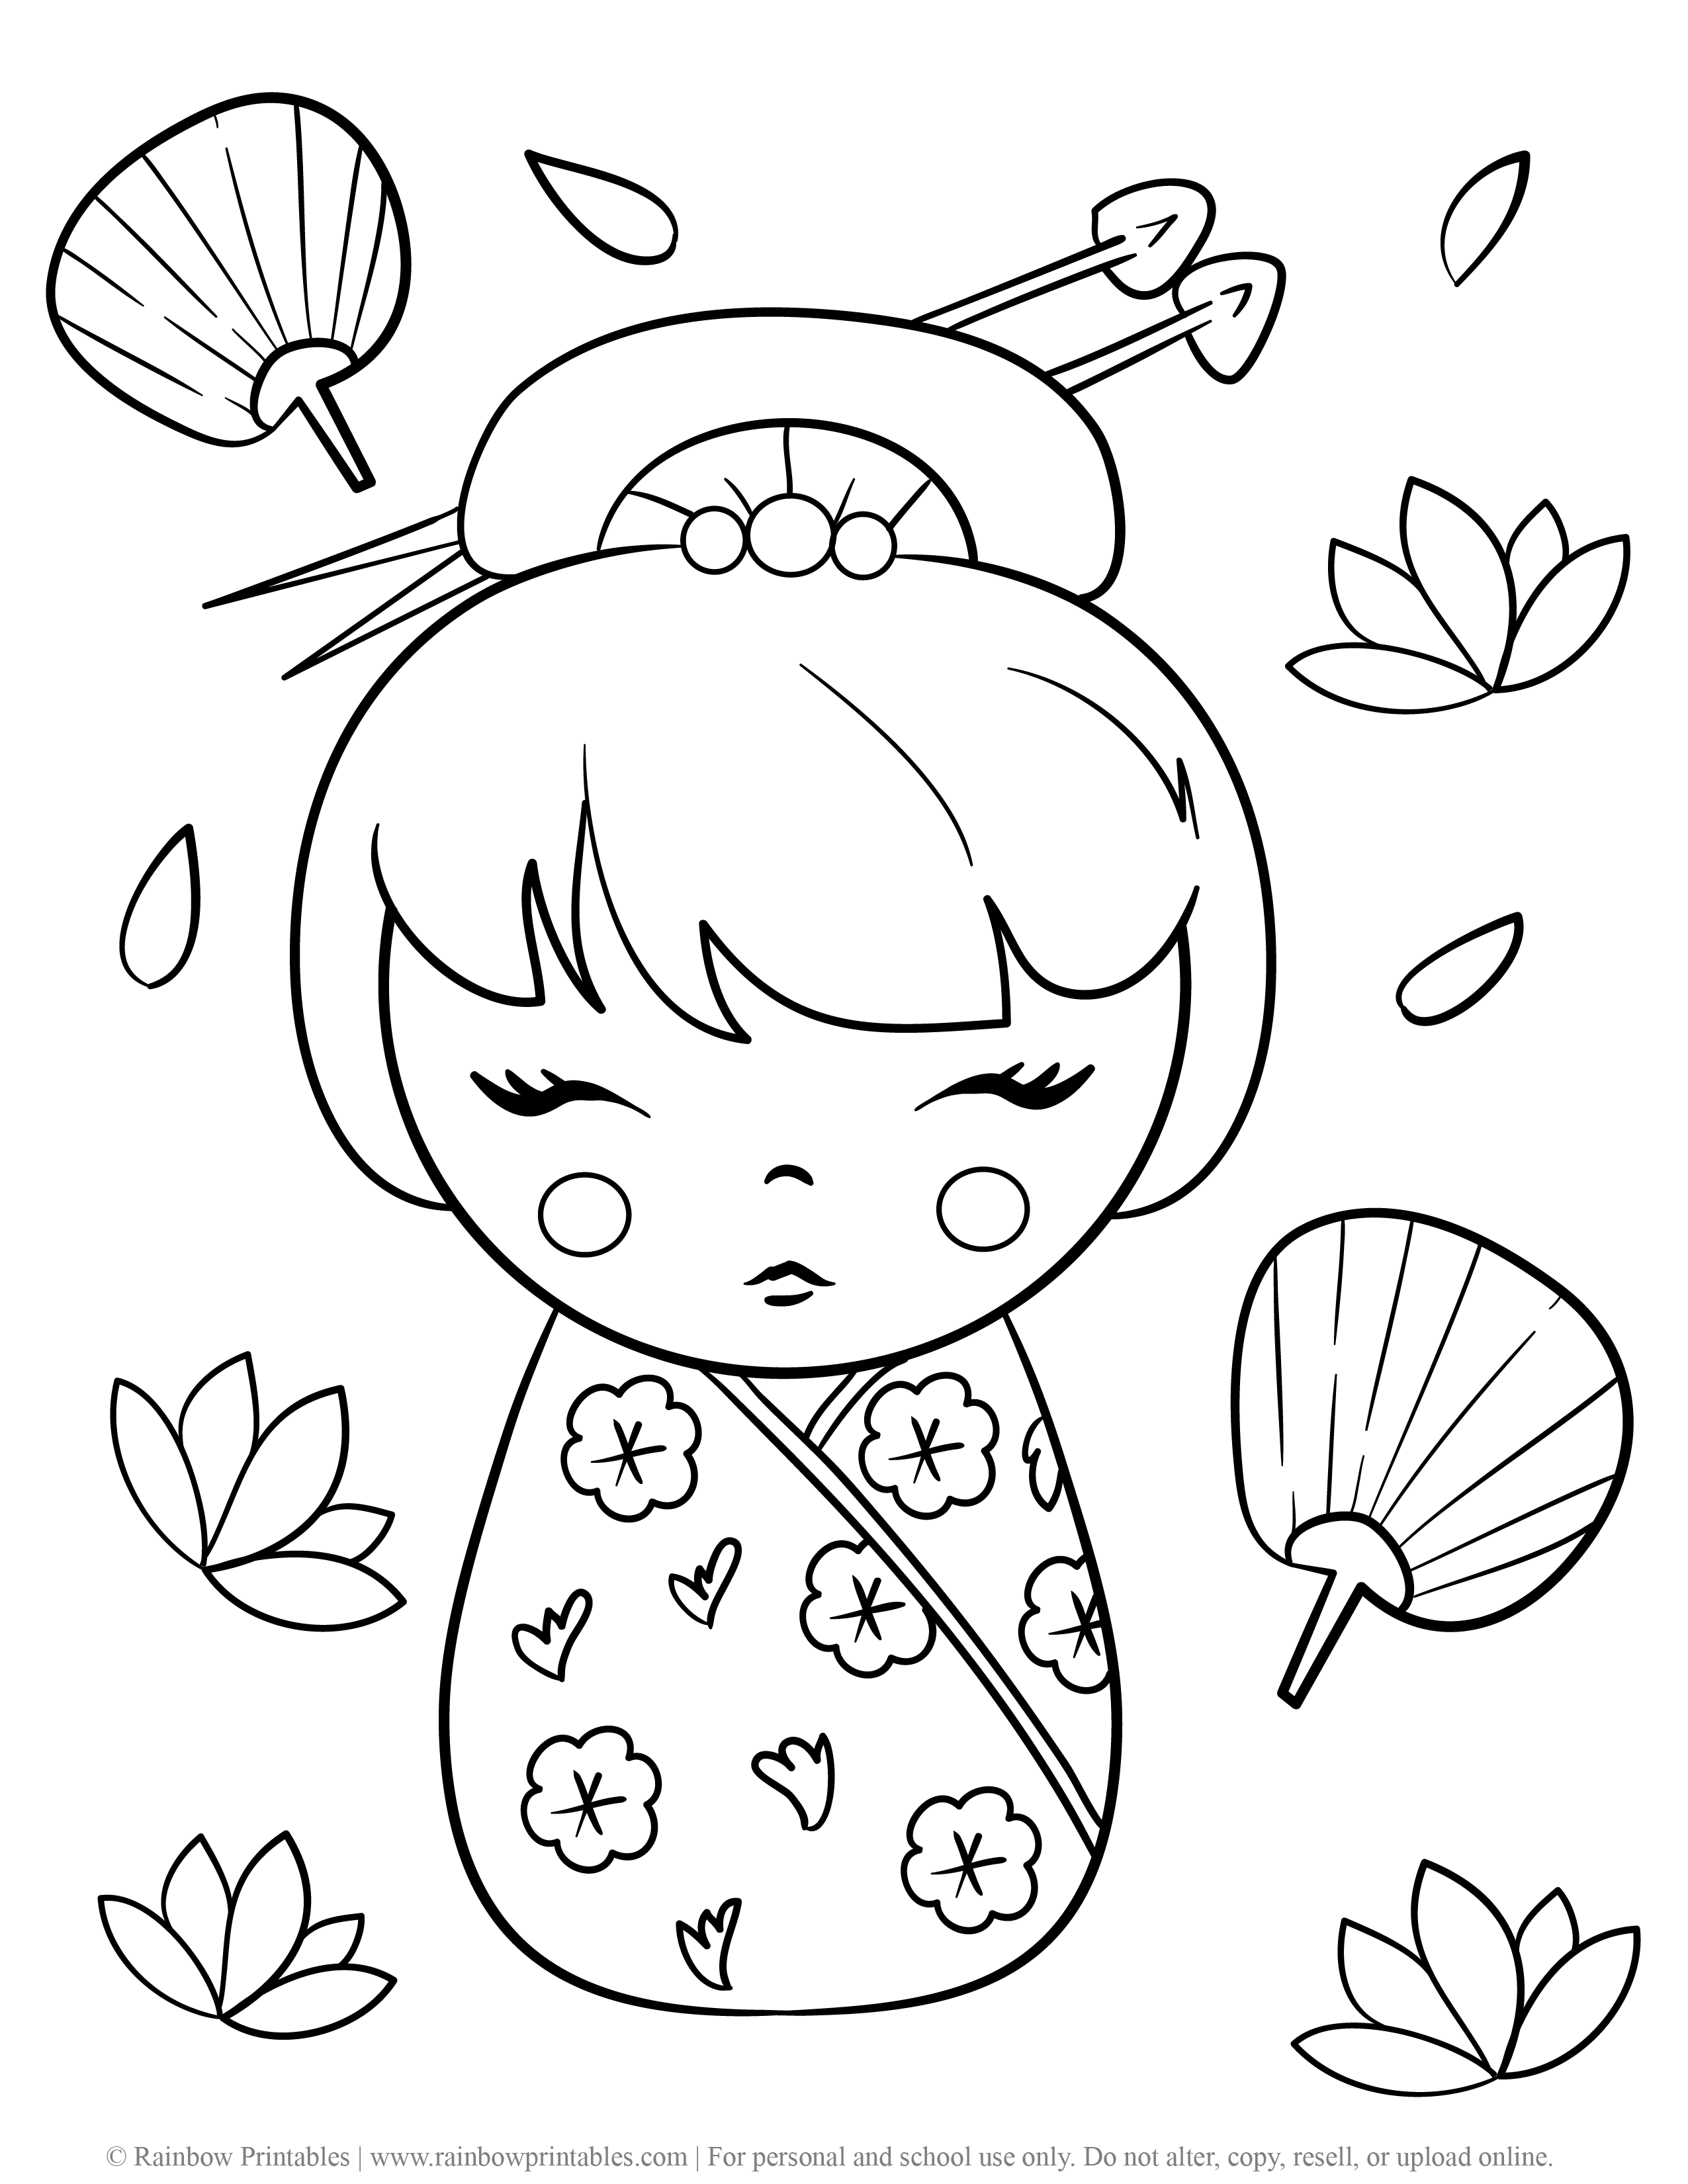 KIMMIDOLL JApanese Wooden Doll CUte Asian Toy Coloring Pages for Kids Fan